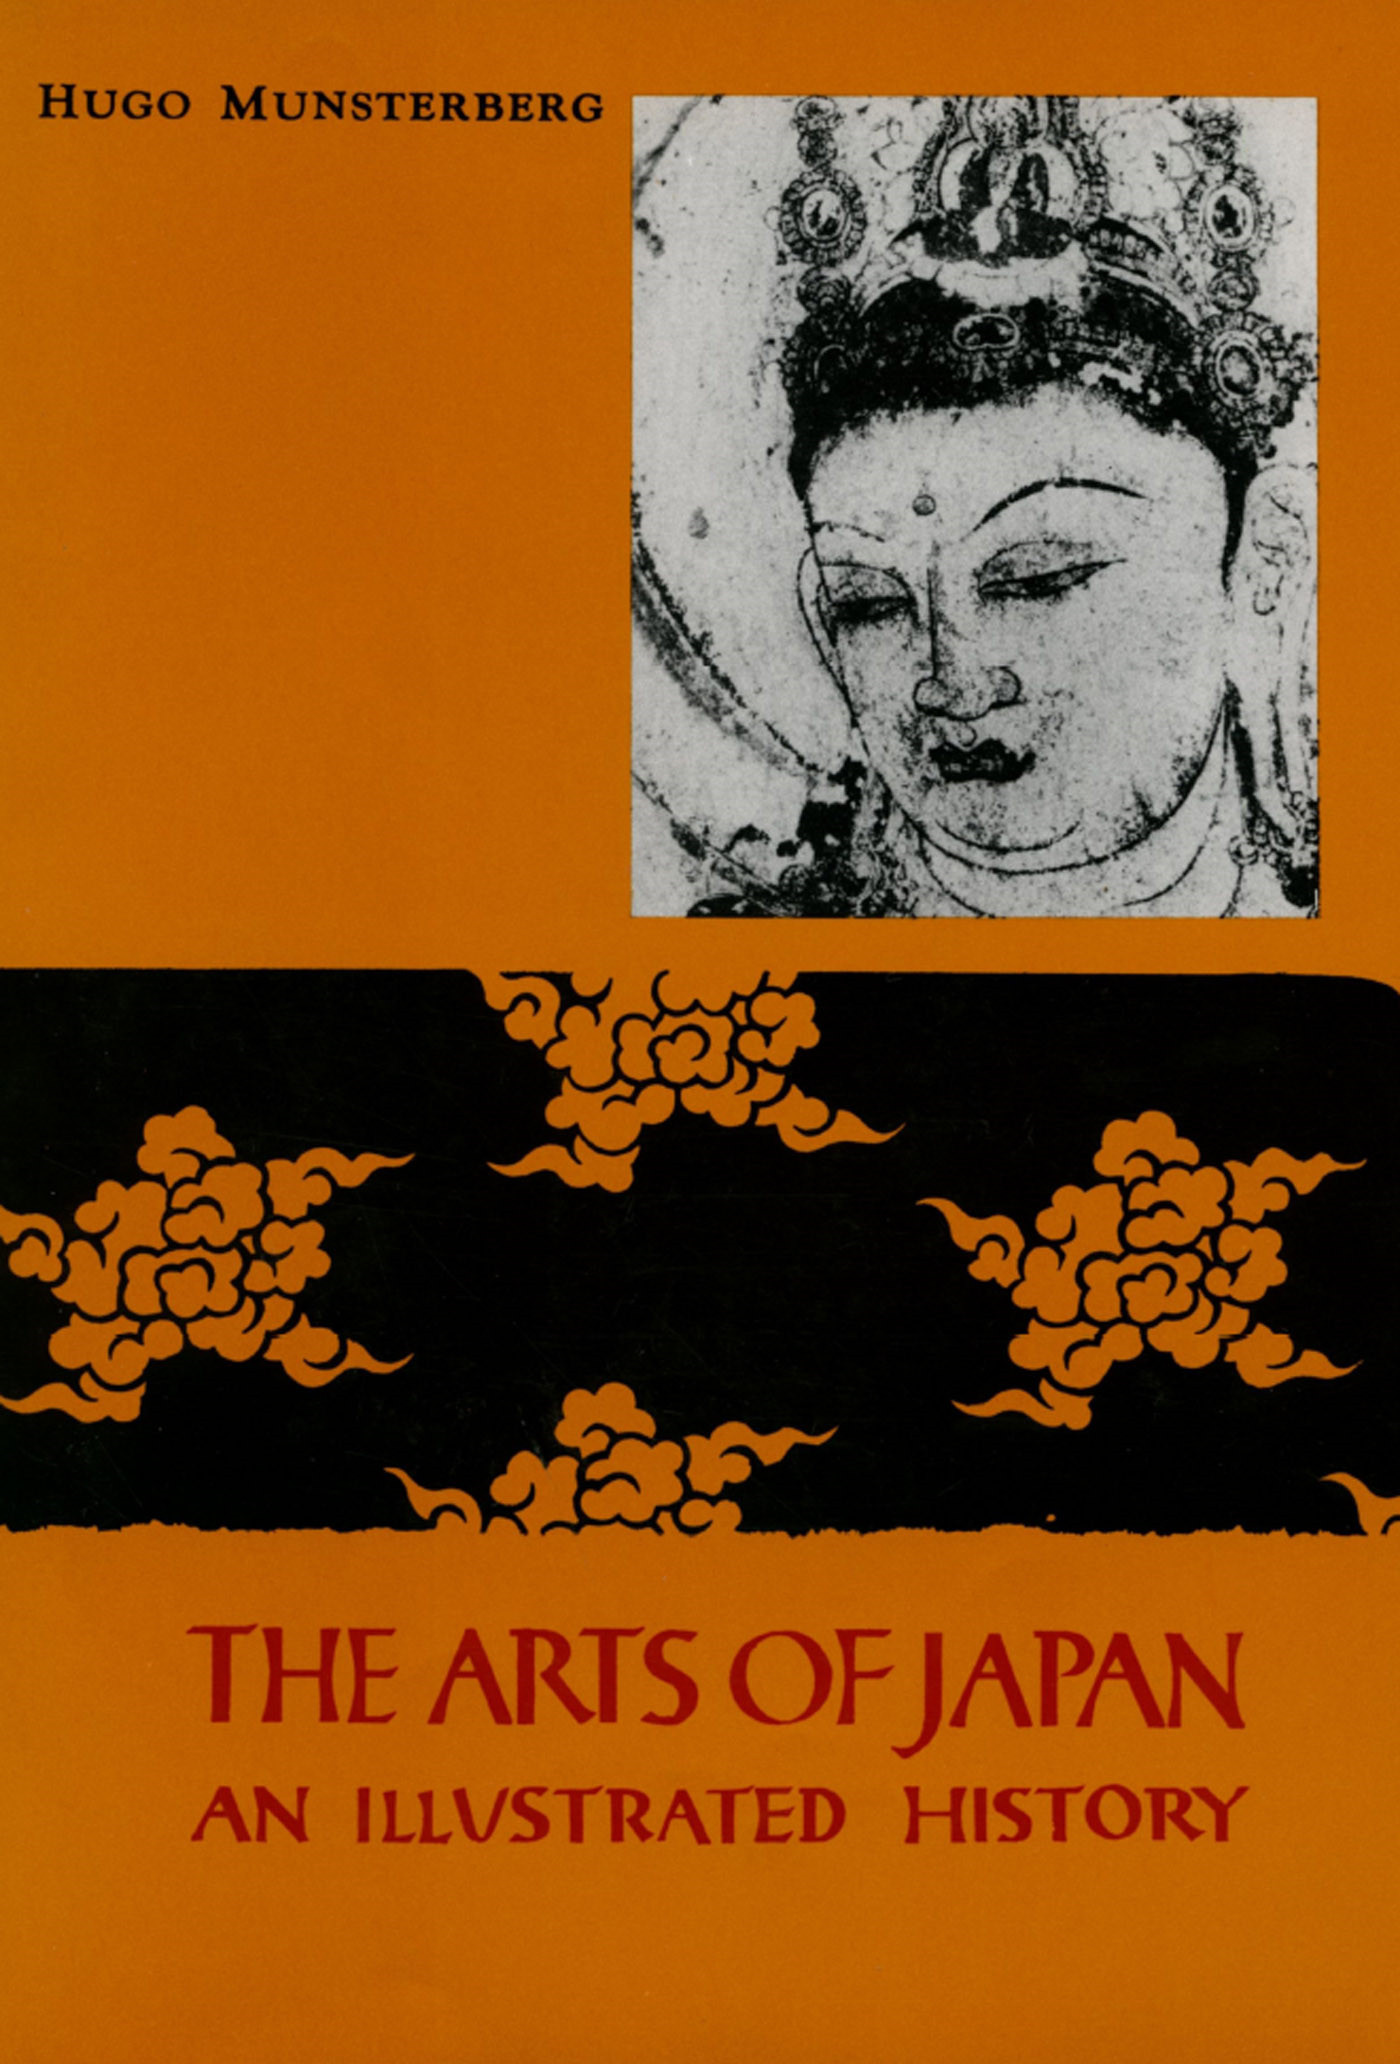 Arts of Japan By: Hugo Munsterberg